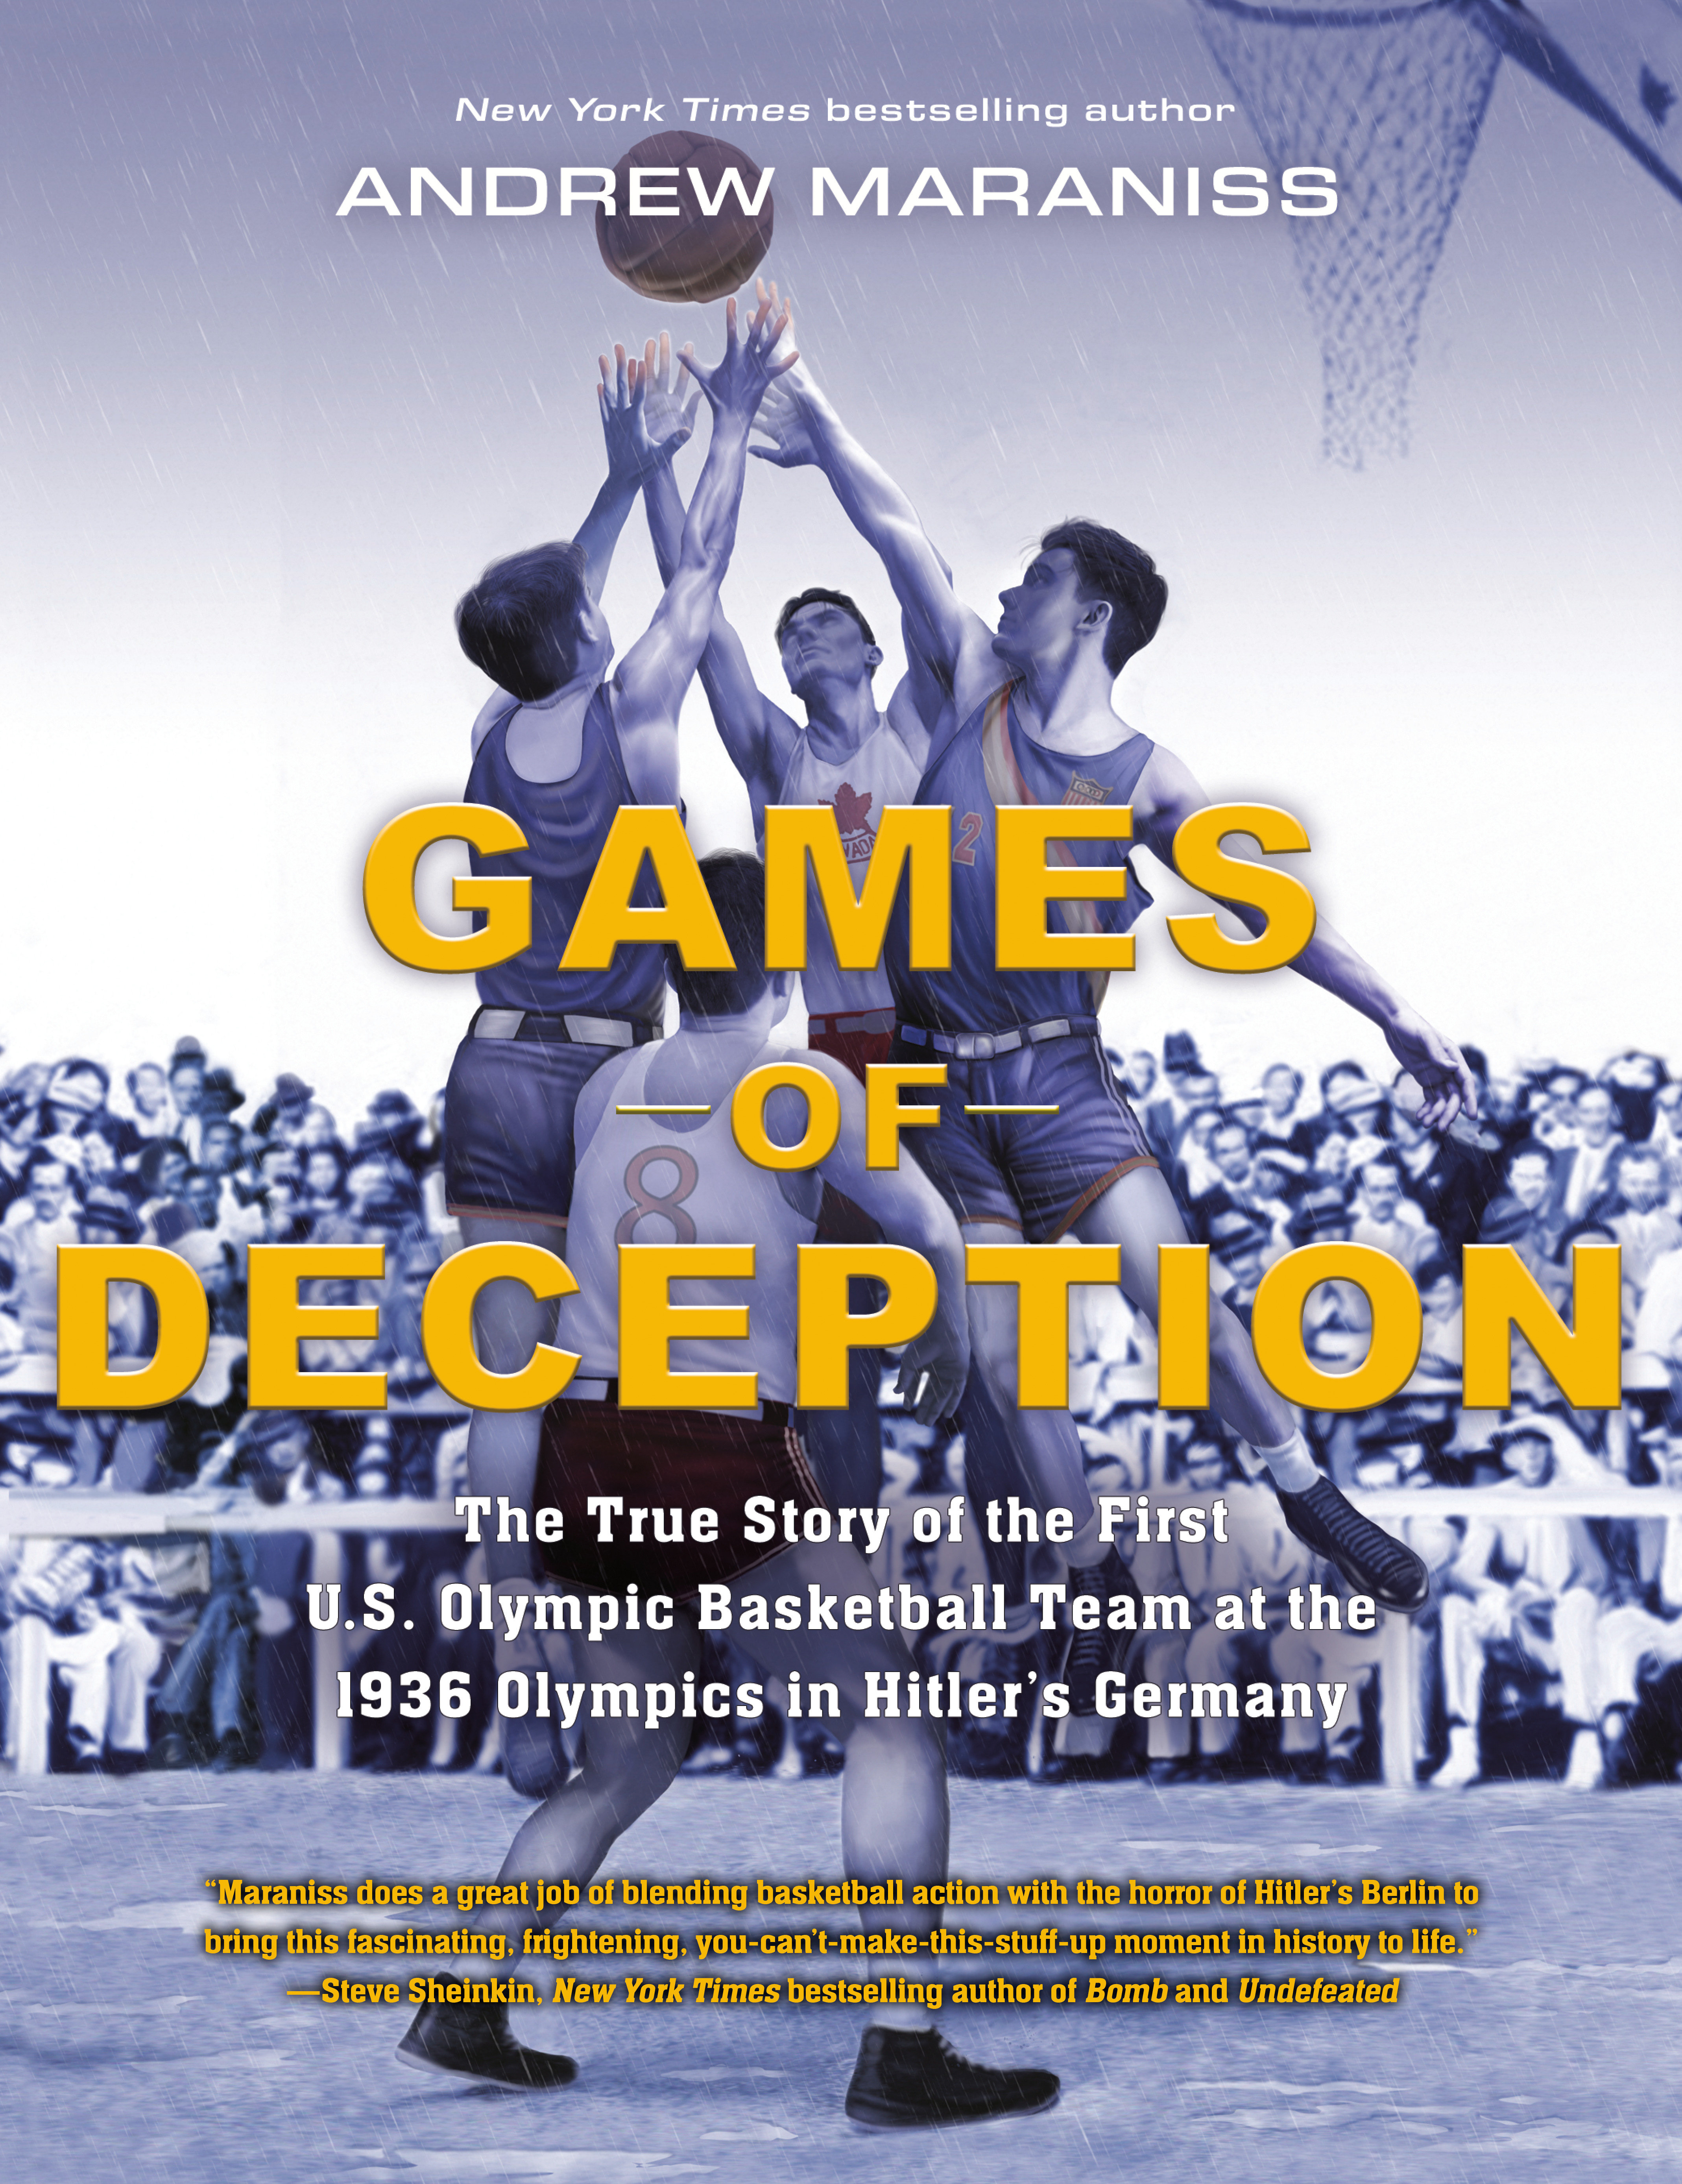 Games of deception the true story of the first U.S. Olympic basketball team at the 1936 Olympics in Hitler's Germany cover image